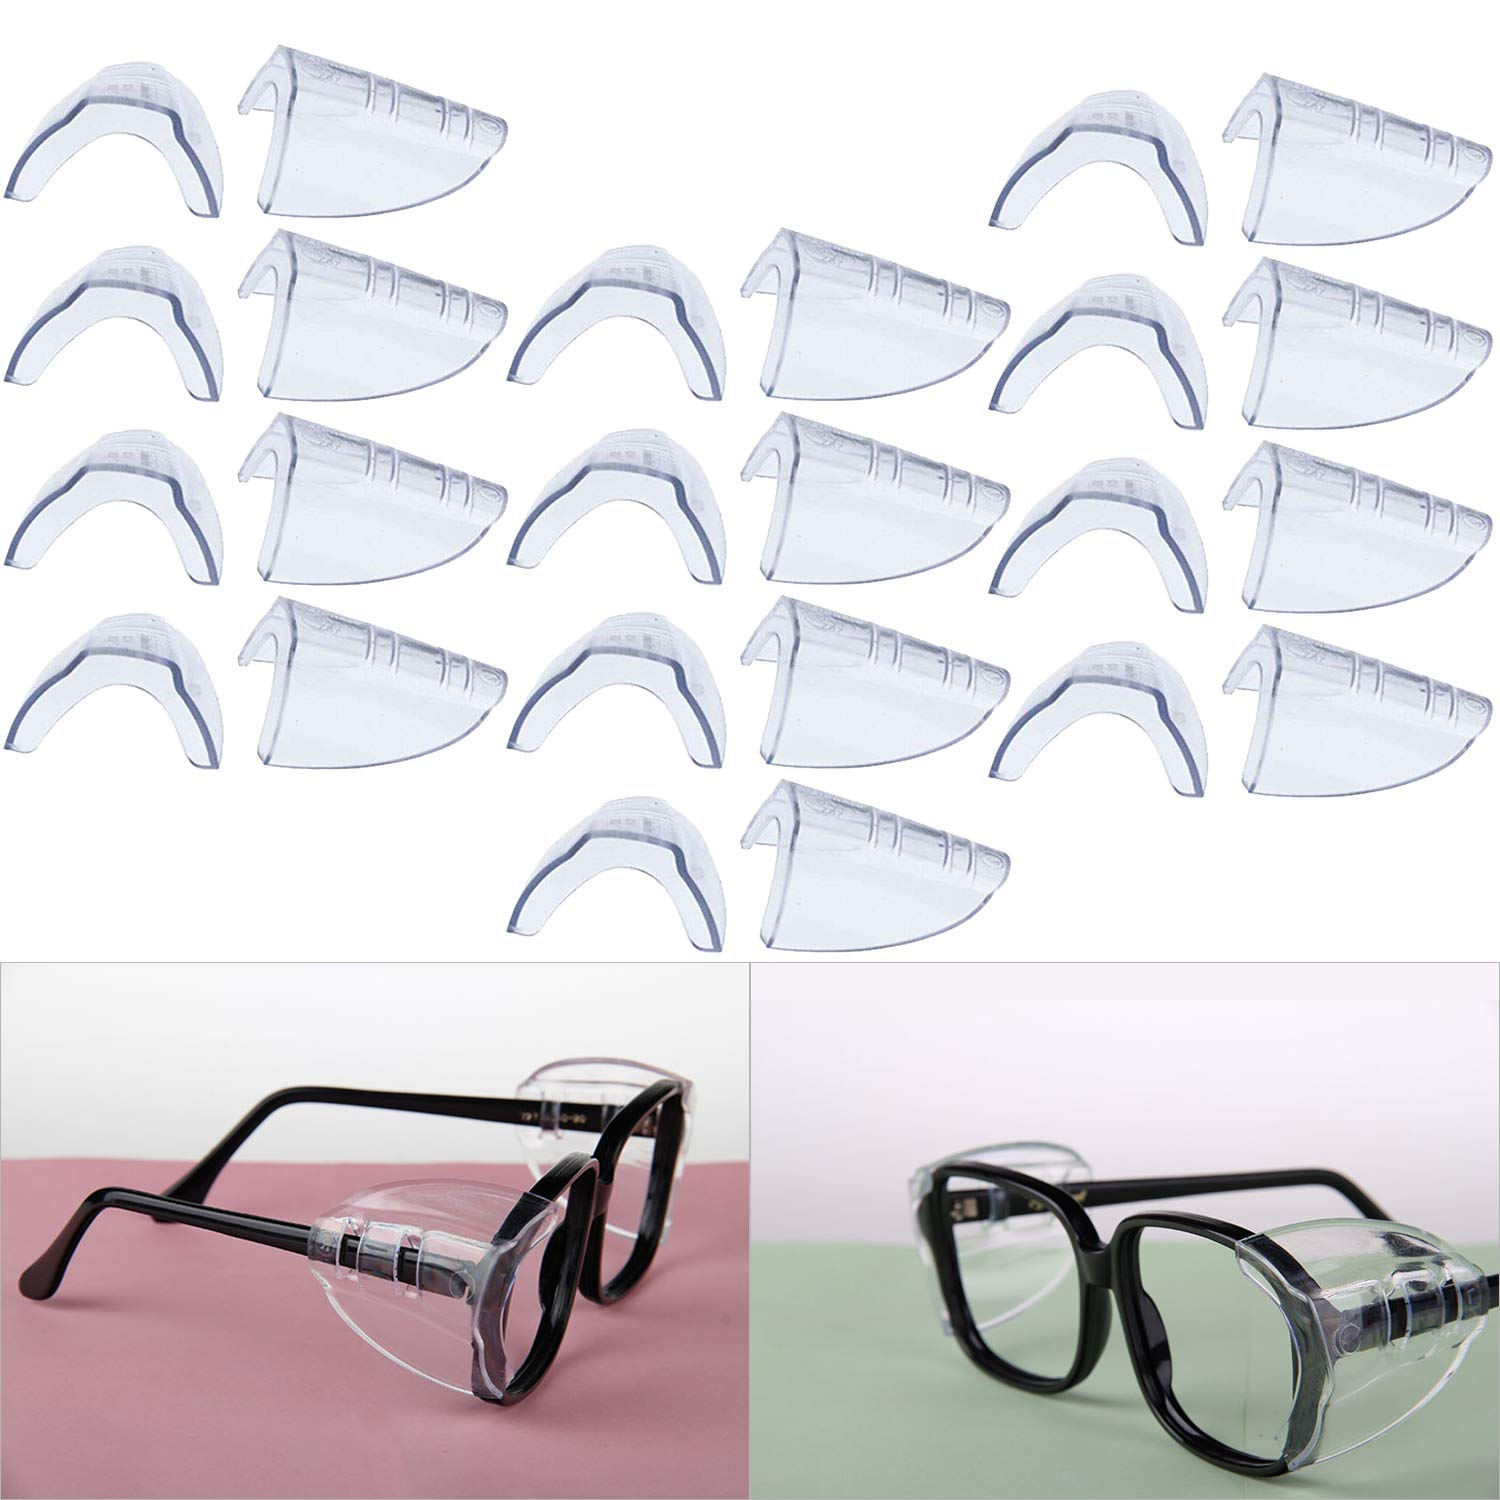 Hub's Gadget 12 Pairs Safety Eye Glasses Side Shields, Slip On Clear Side Shield for Safety Glasses- Fits Small to Medium Eyeglasses by Hub's Gadget (Image #1)